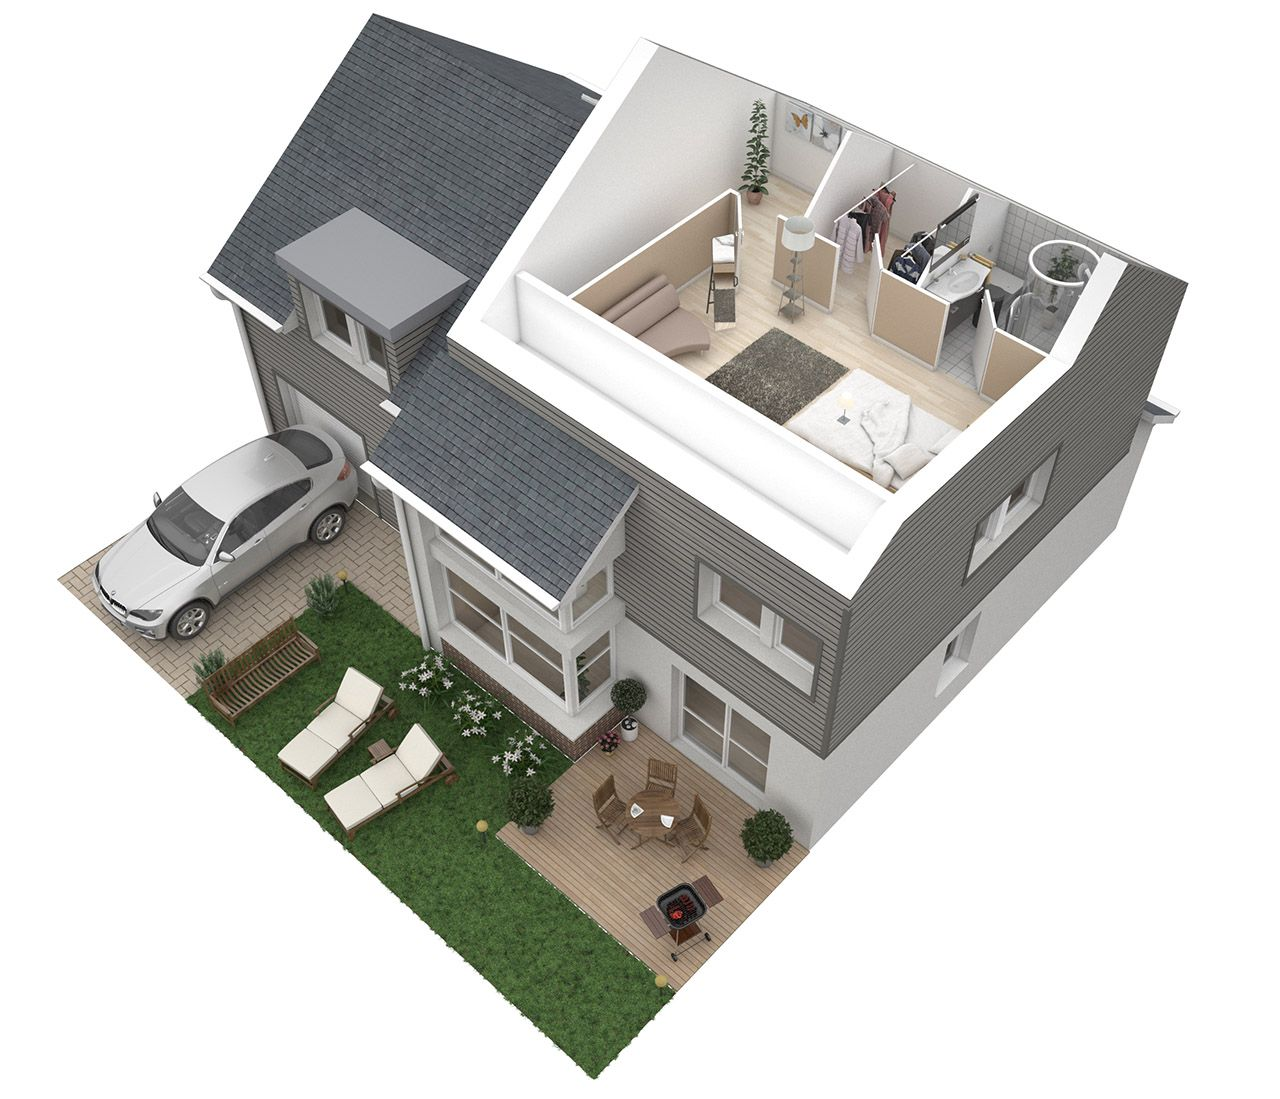 Simulation maison 3d gratuit maison moderne for Simulation construction maison 3d gratuit